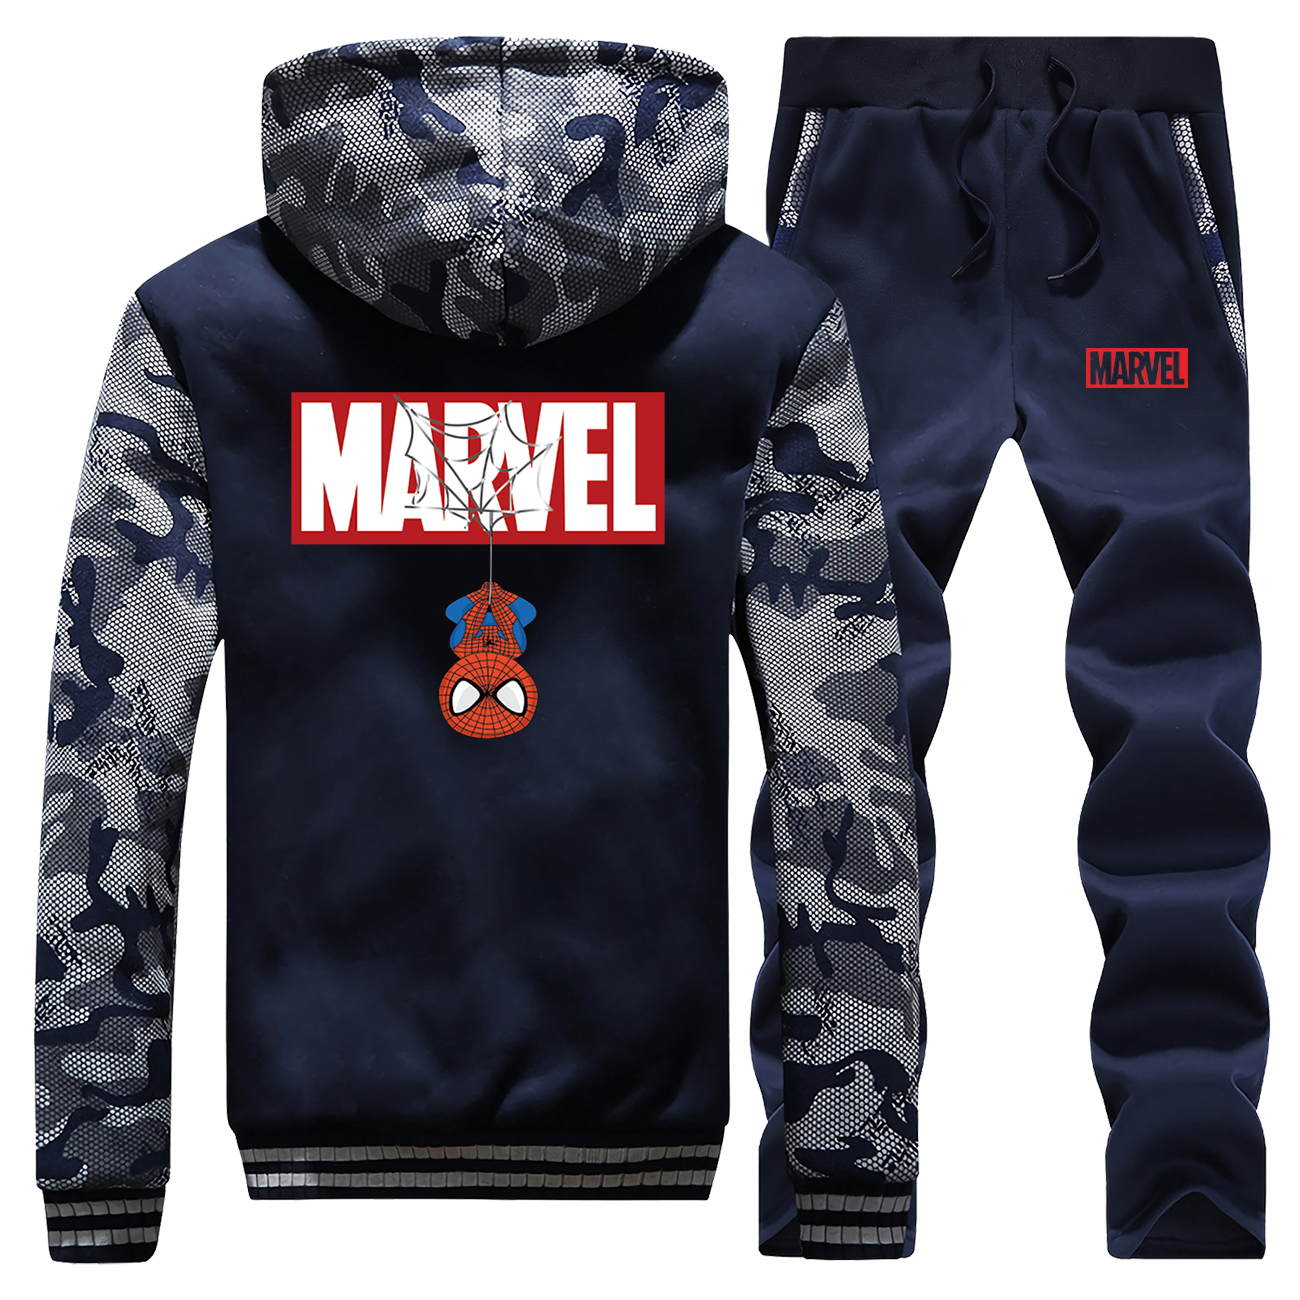 Marvel Funny Spiderman Hot Sale Winter Coat Thick Camouflage Mens Hoodie Casual Jackets Suit Sportswear + Pants 2 Piece Set